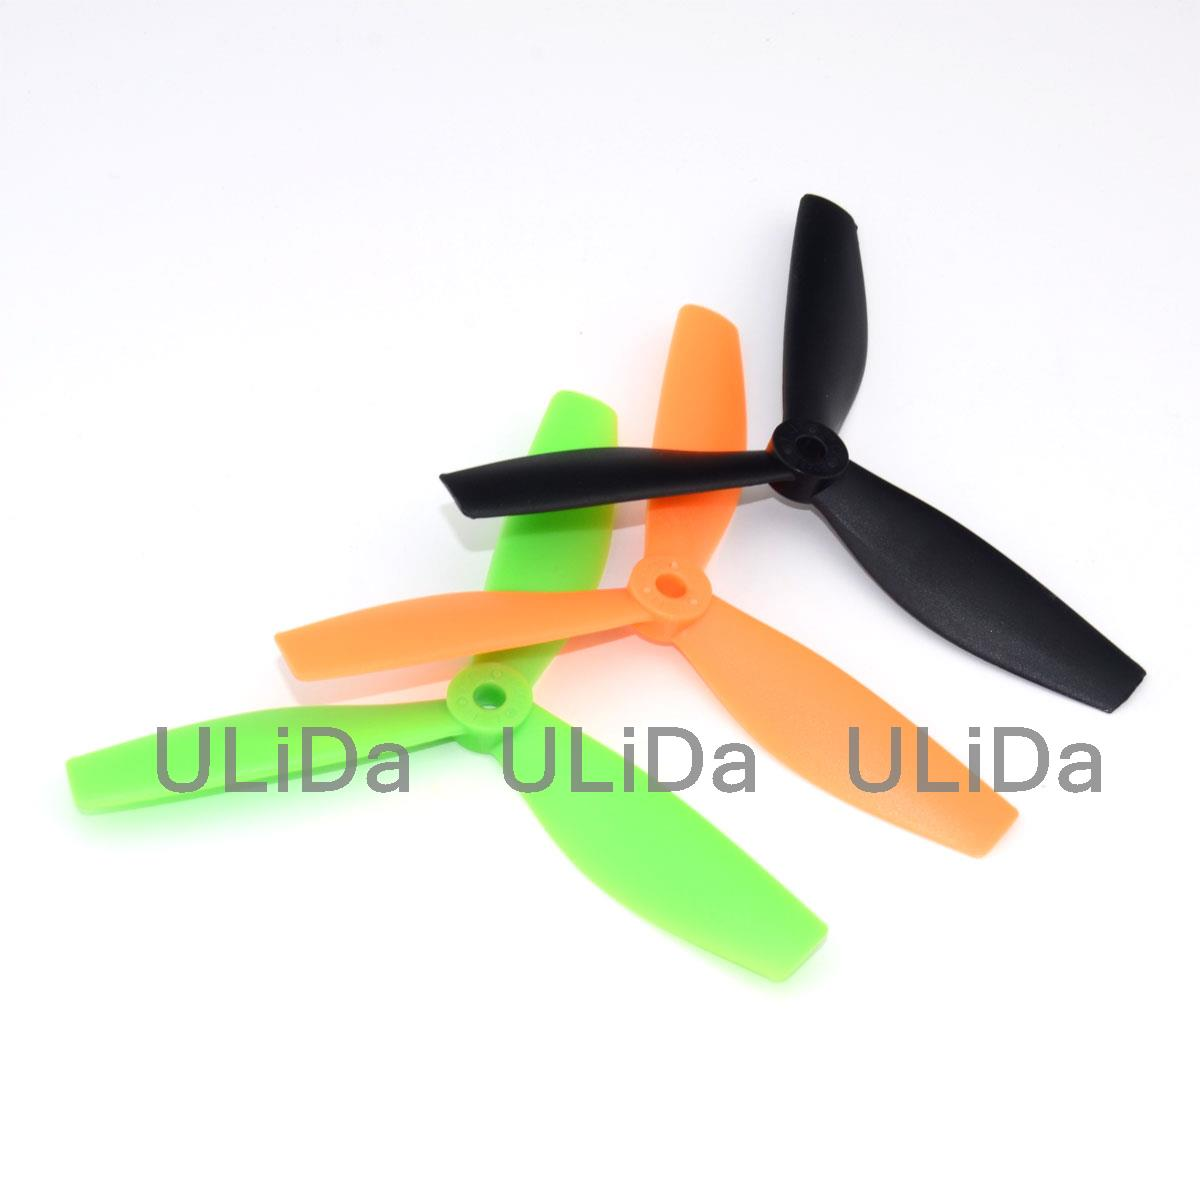 2Pairs/4Pcs 3 Blade 5045 Bullnose Propeller Prop CW CCW for DIY RC FPV Racing Quadcopter 4 pairs of high performance 5030 5x3 3 blade prop cw ccw nylon propeller for rc 250 f330 quadcopter yellow